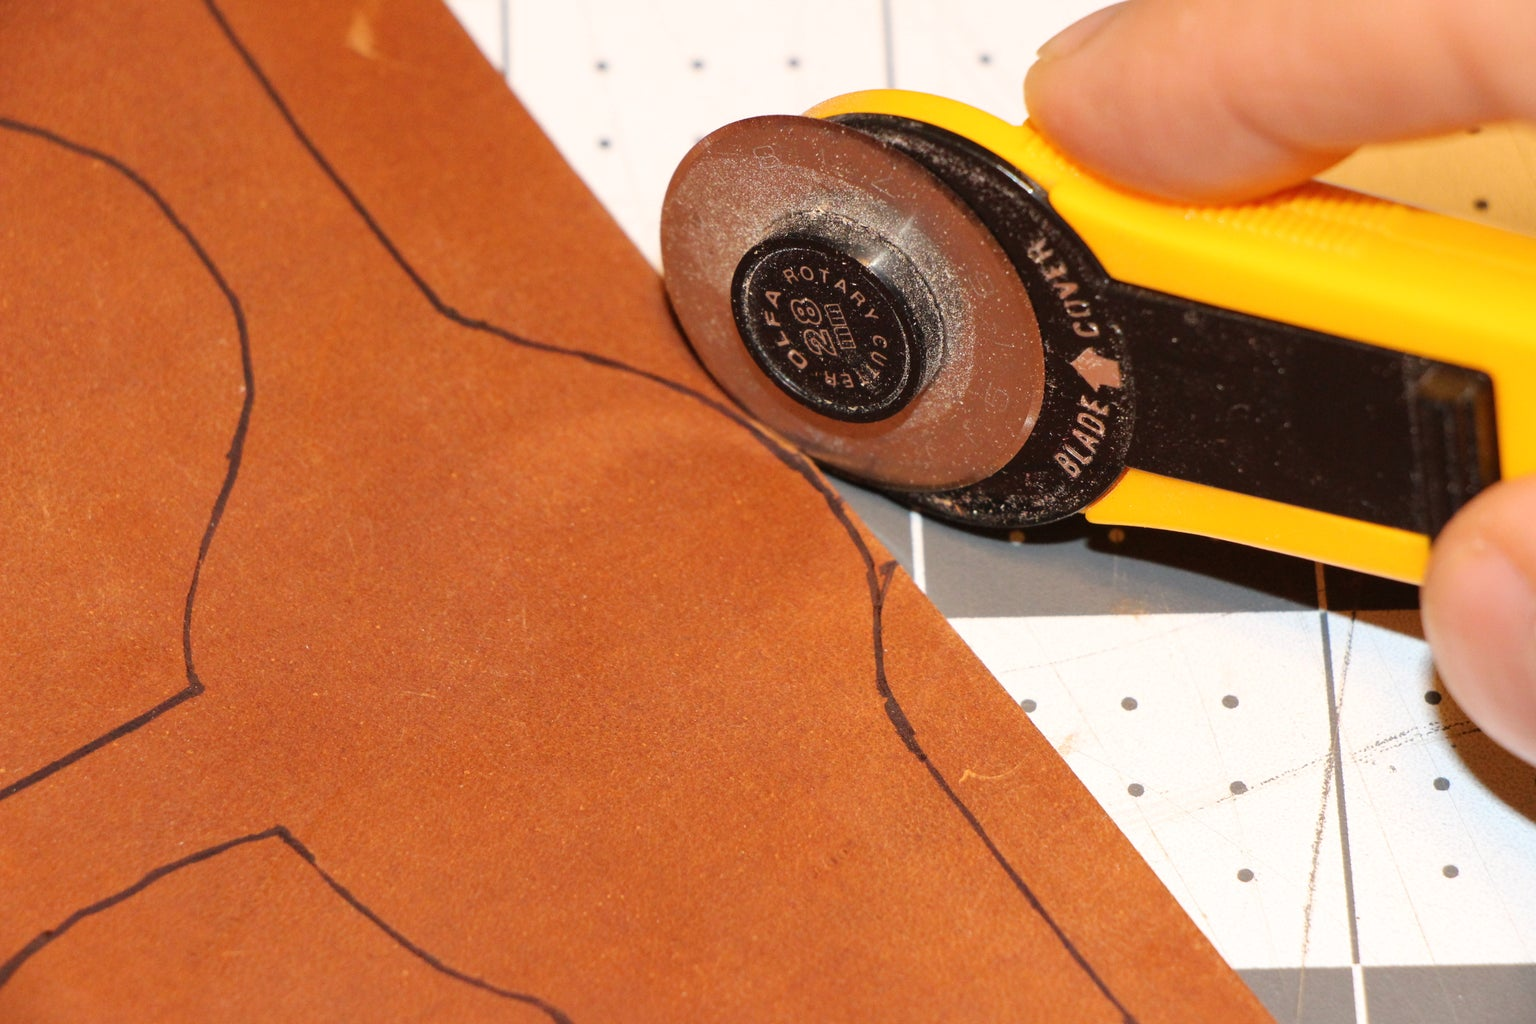 Transferring Template and Cutting Out the Leather